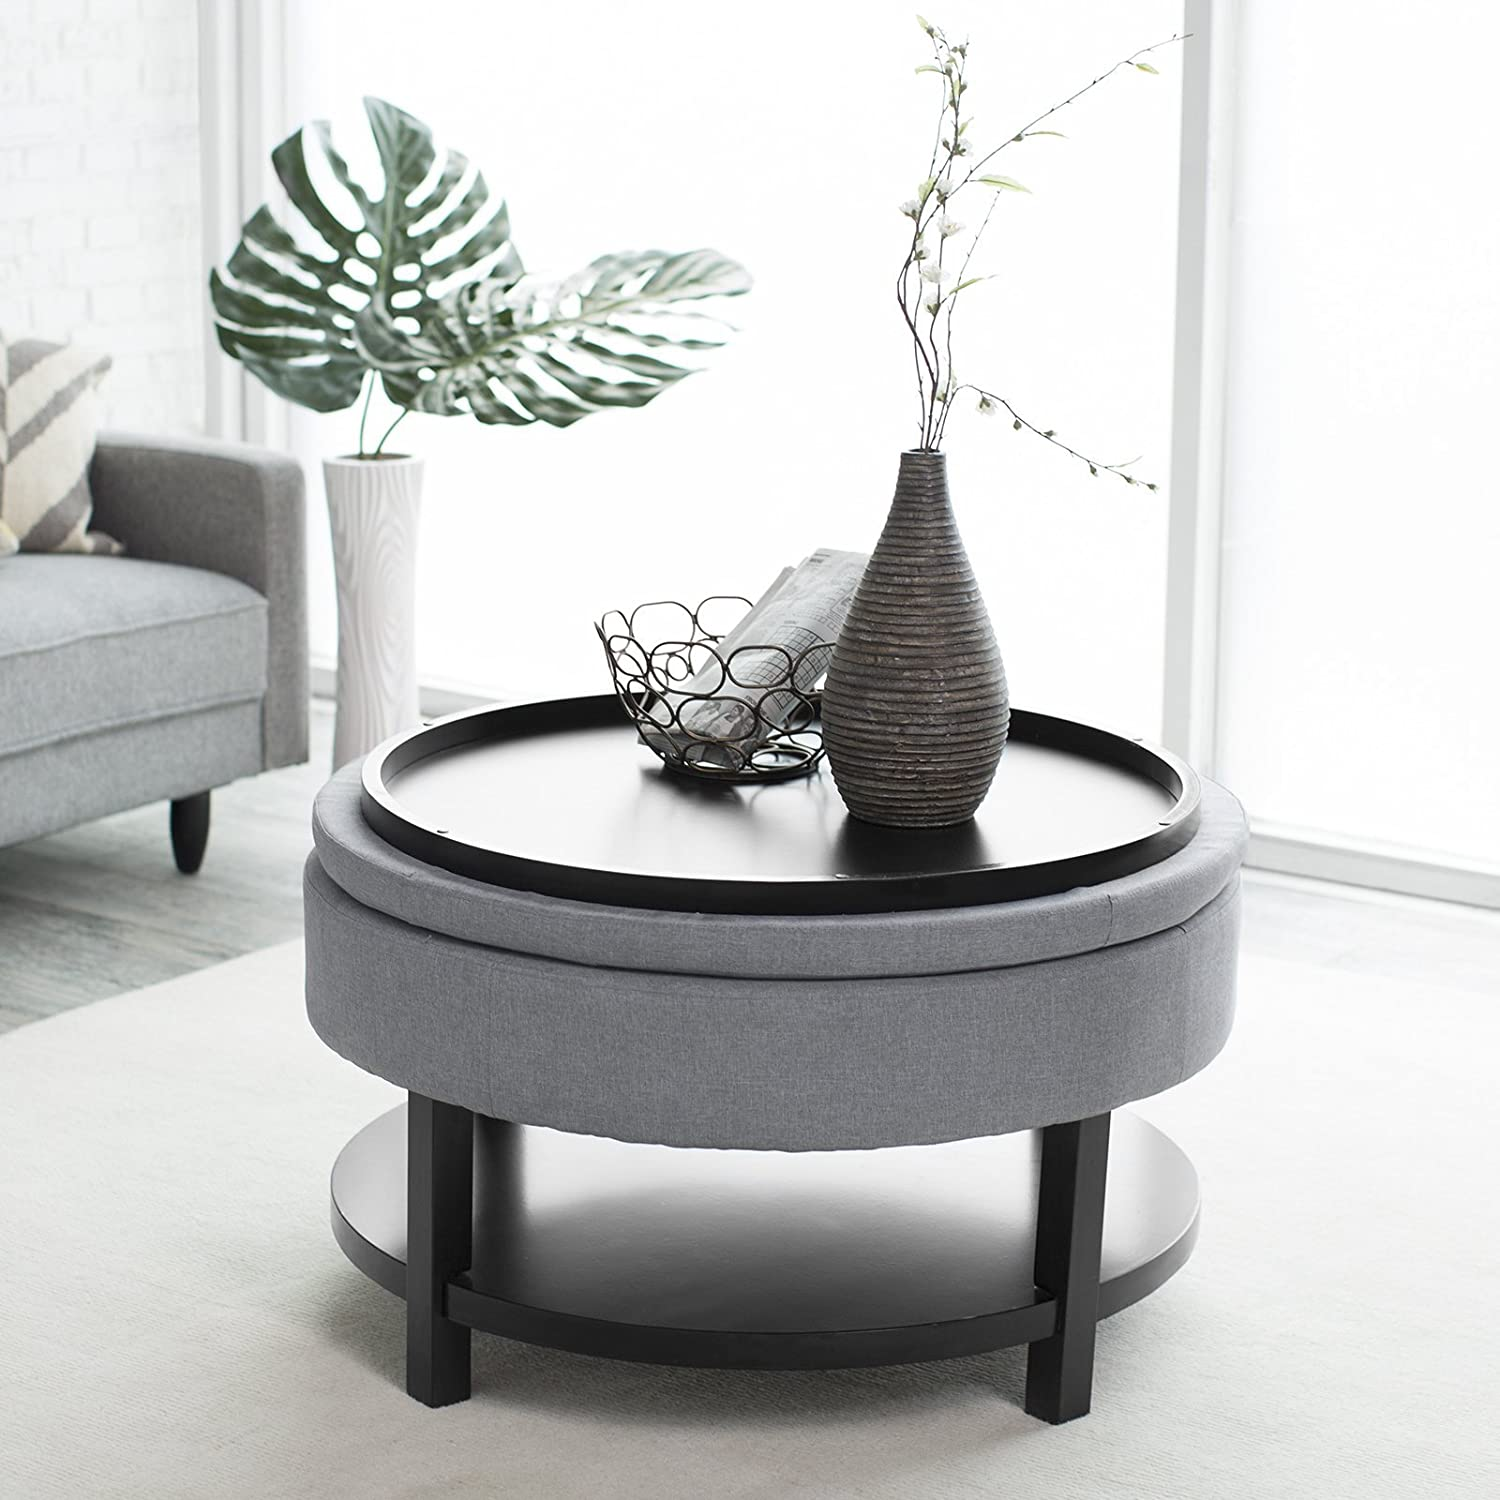 Amazon Belham Living Coffee Table Storage Ottoman with Shelf